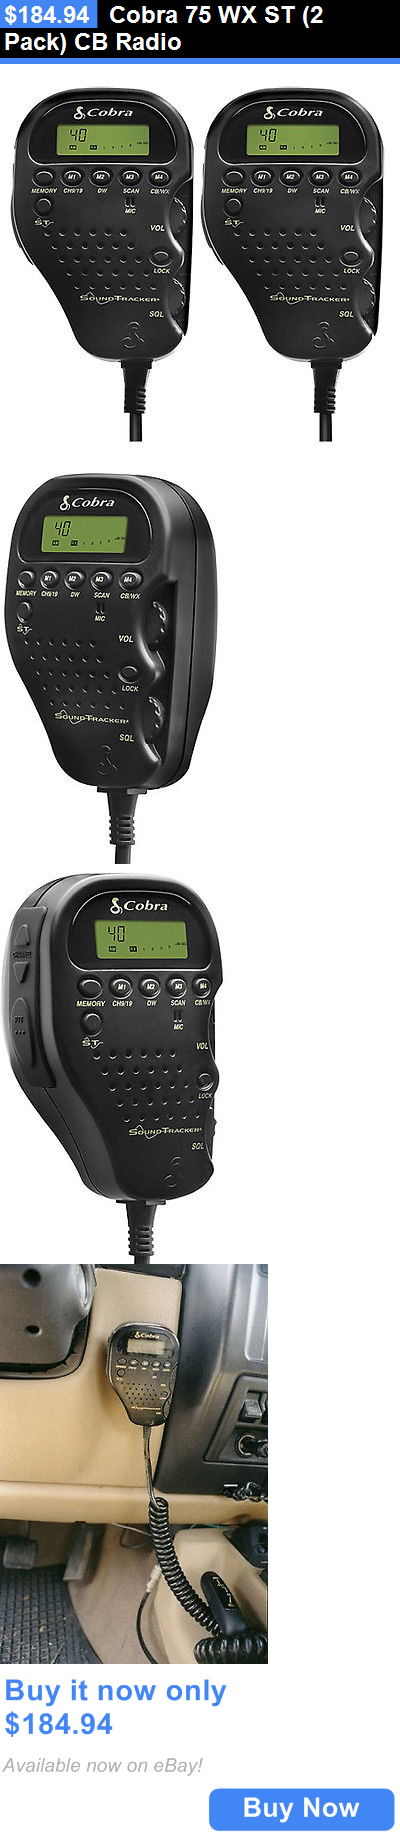 cb radios cobra 75 wx st 2 pack cb radio buy it now only cb radios cobra 75 wx st 2 pack cb radio buy it now